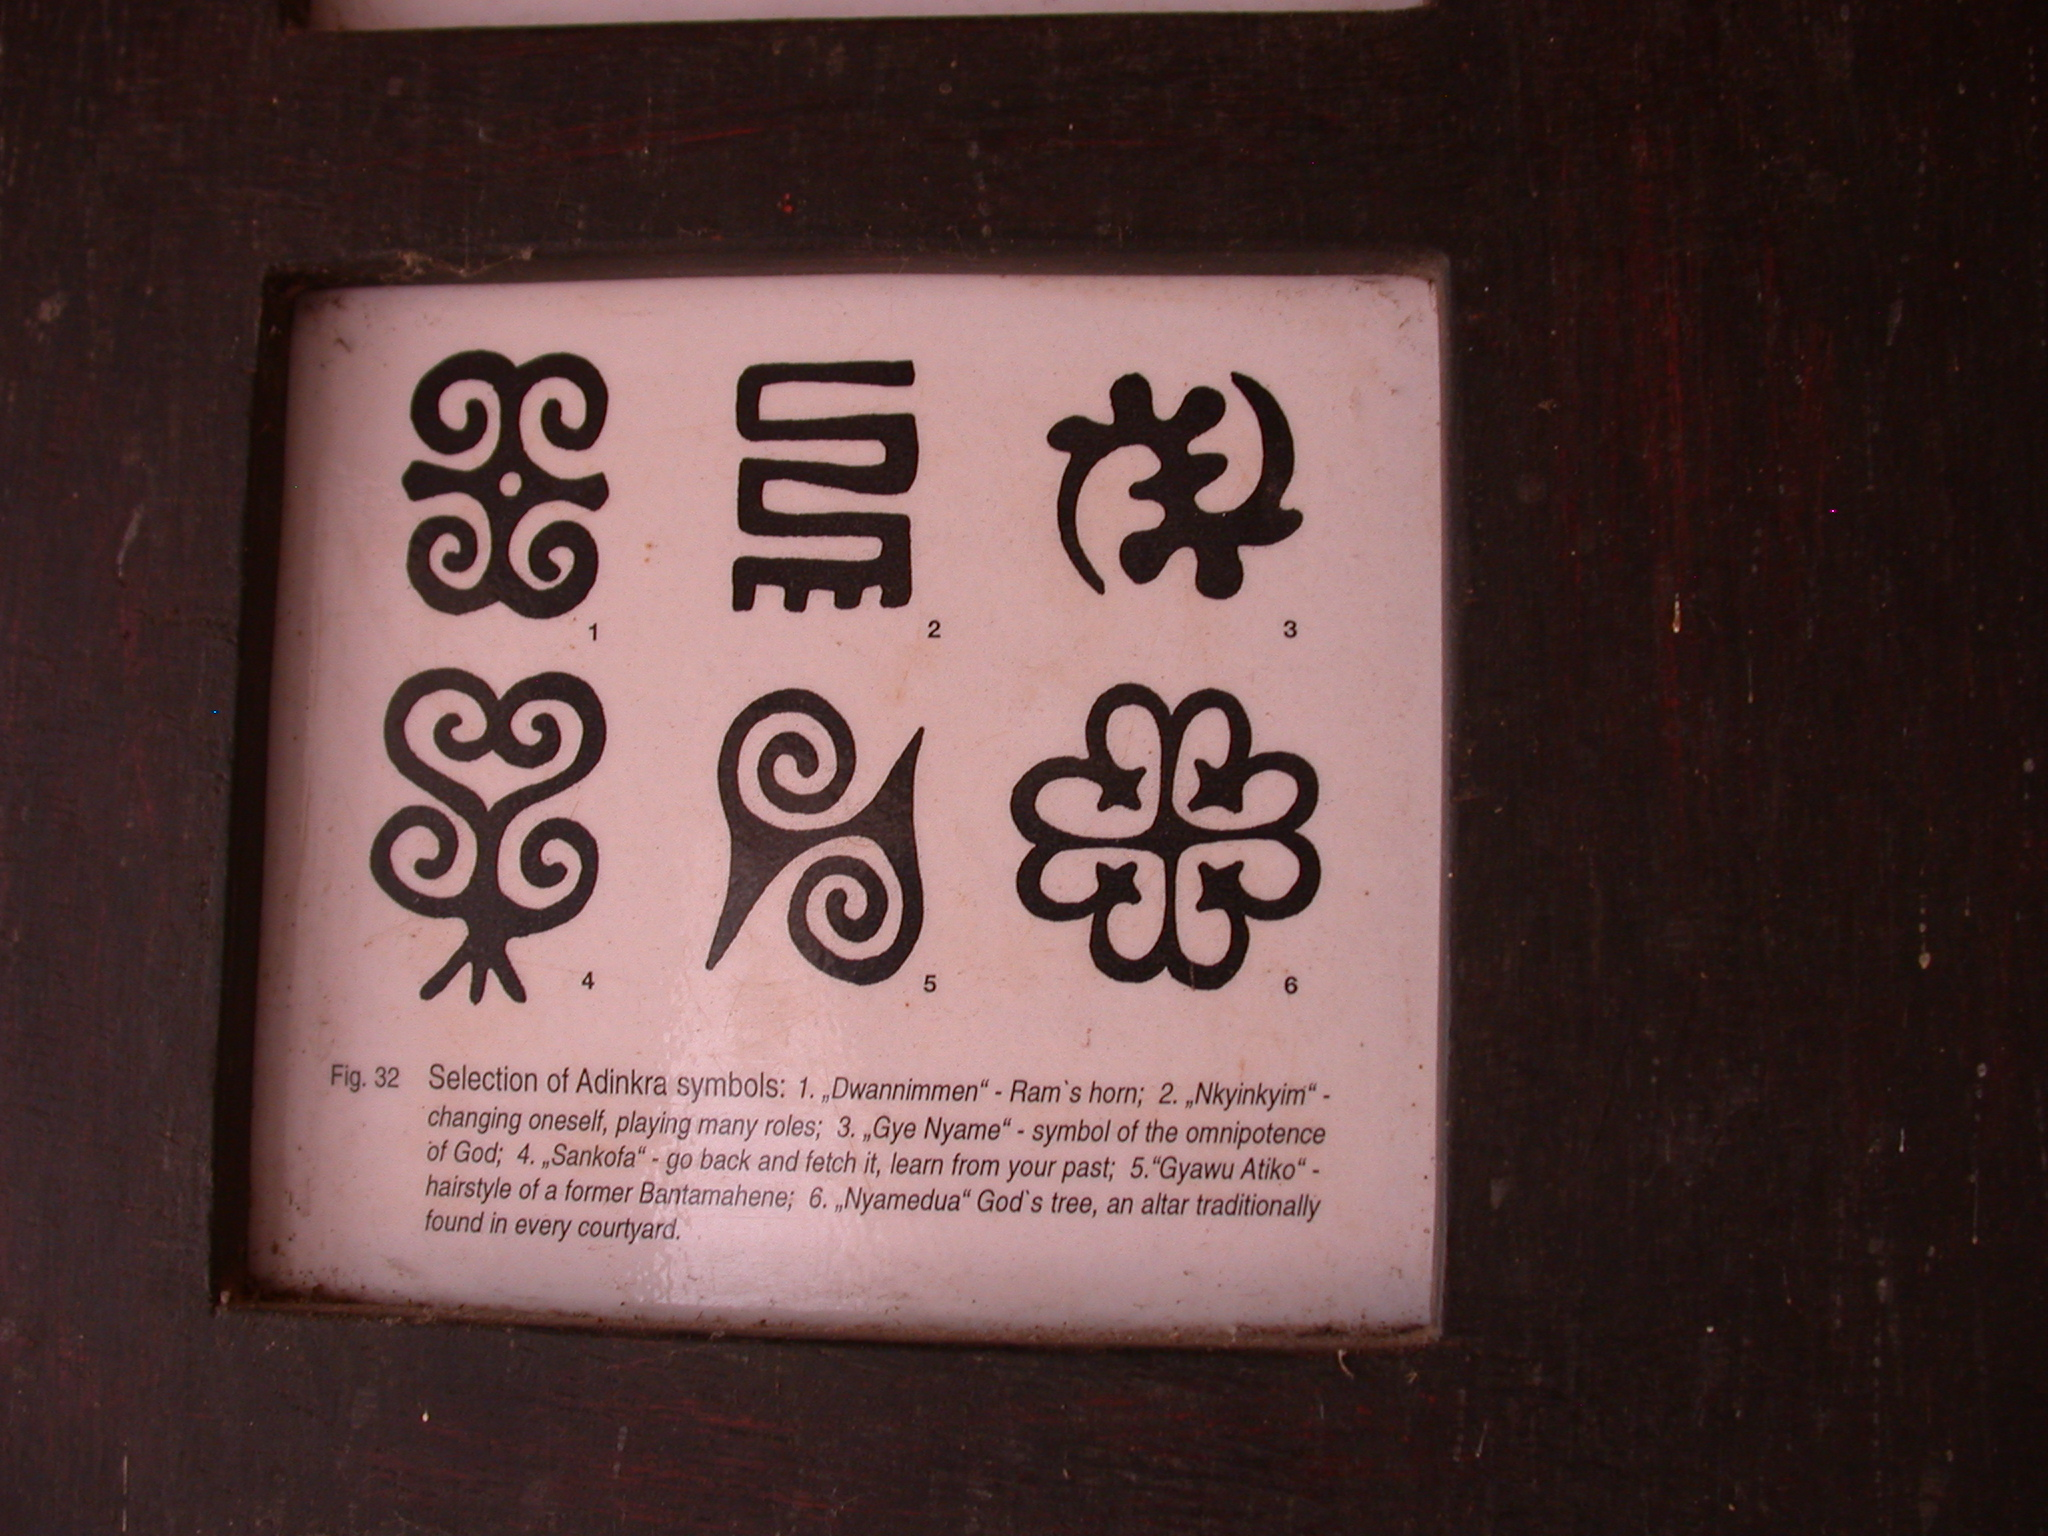 Selection of Adinkra Symbols of Dwannimmen Ram Horn, Nyinkyim Changing Oneself, Gye Nyame Omnipotence of God, Sankofa Learn From Your Past, Gyawu Atiko Bantamahene Hairstyle, and Nyamedua God Tree Courtyard Altar, Asante Traditional Shrine at Ejisu-Besease, Ghana